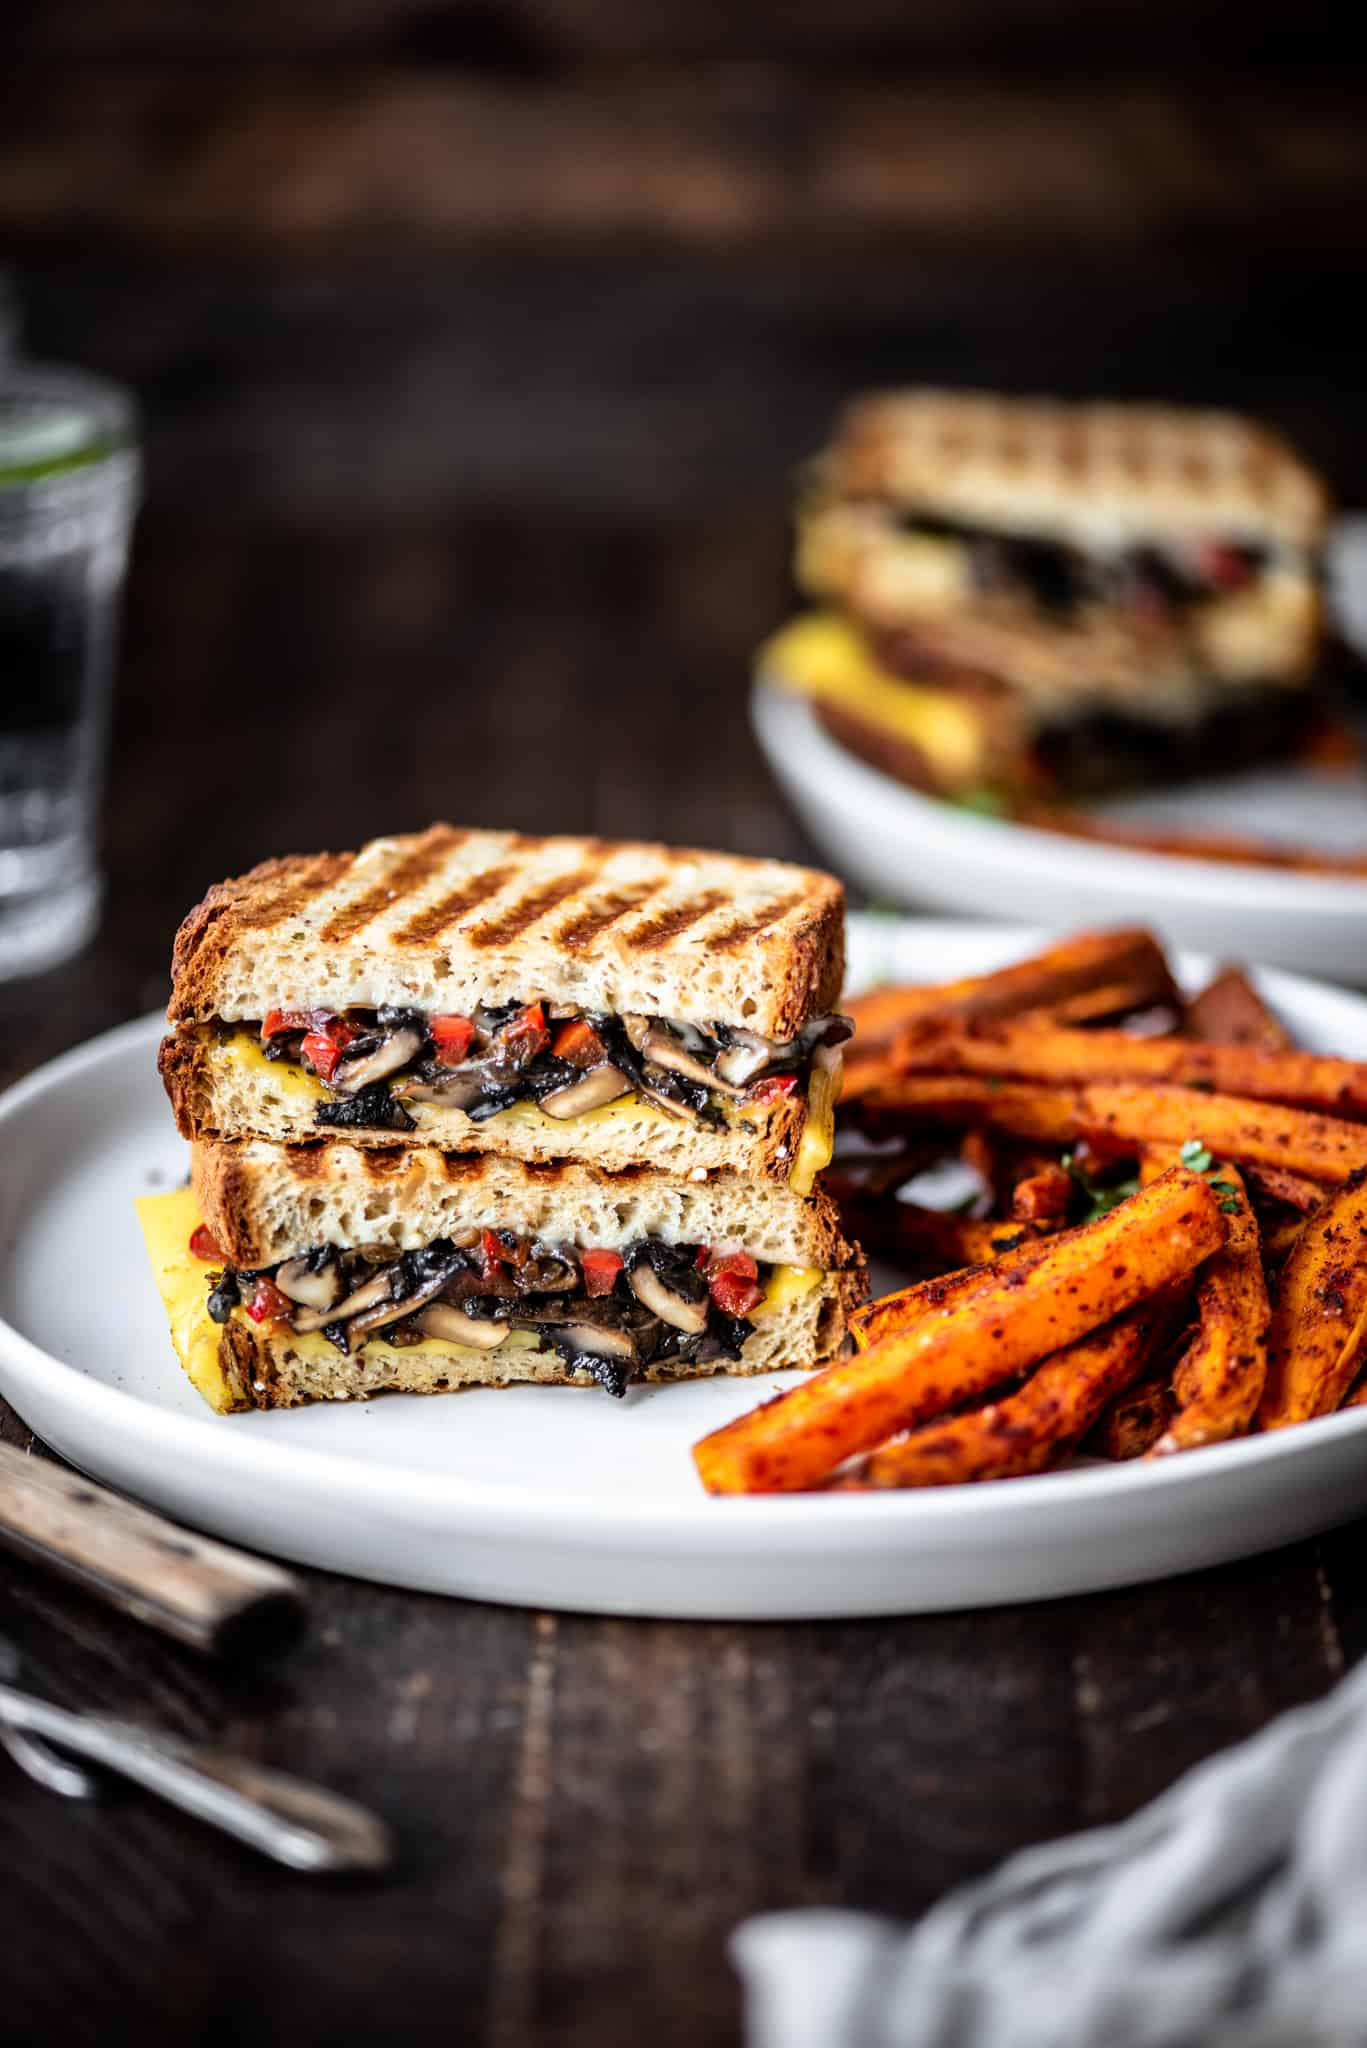 Side view of gluten free mushroom panini on a white plate with sweet potato fries